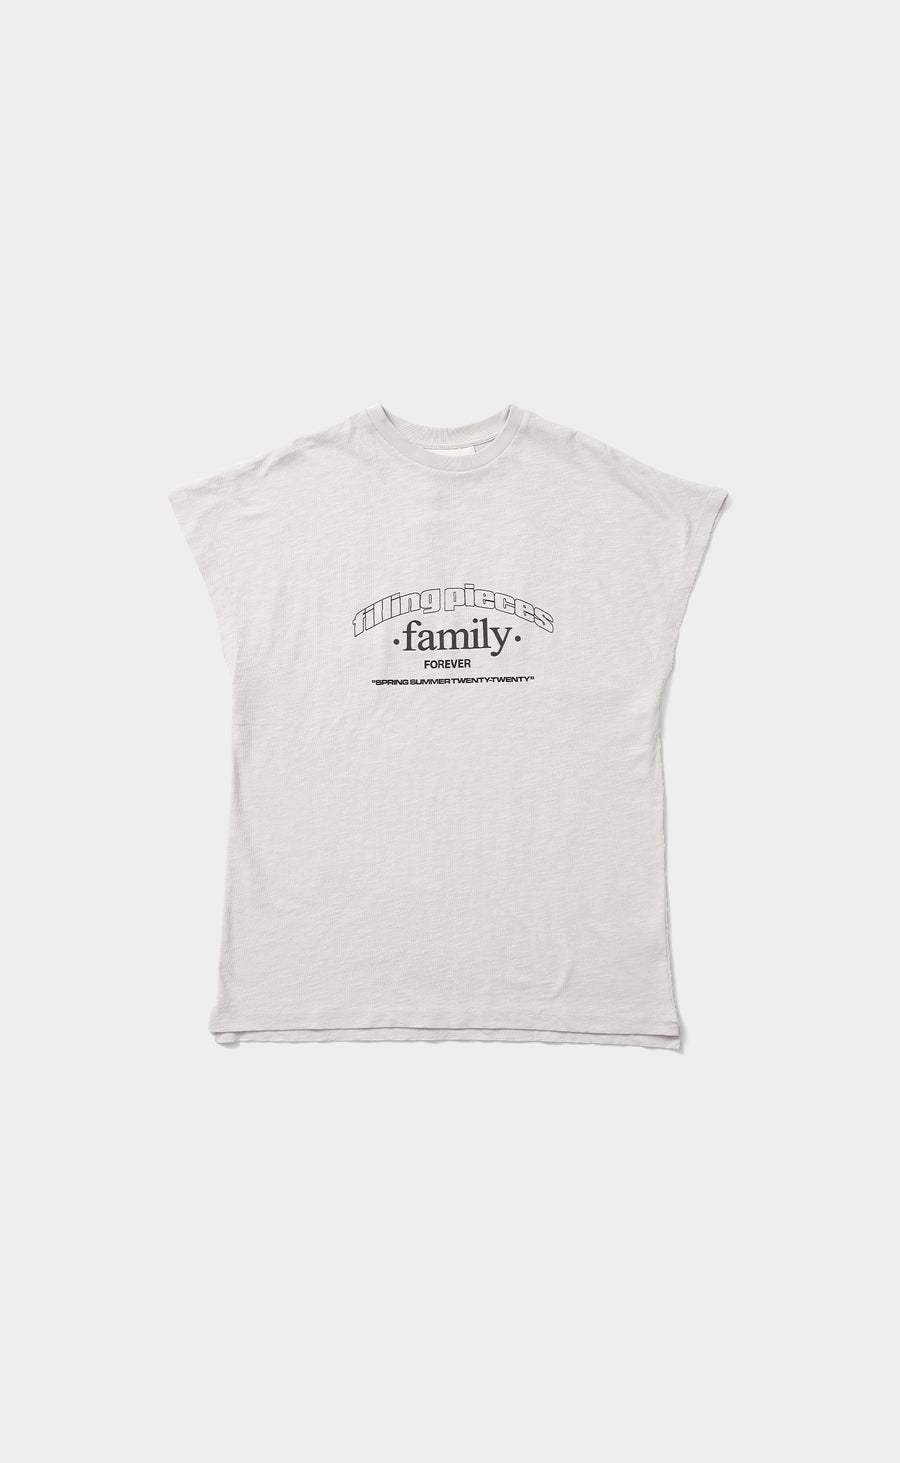 Graphic Sleeveless Tee FP Family Whitecap Grey - women